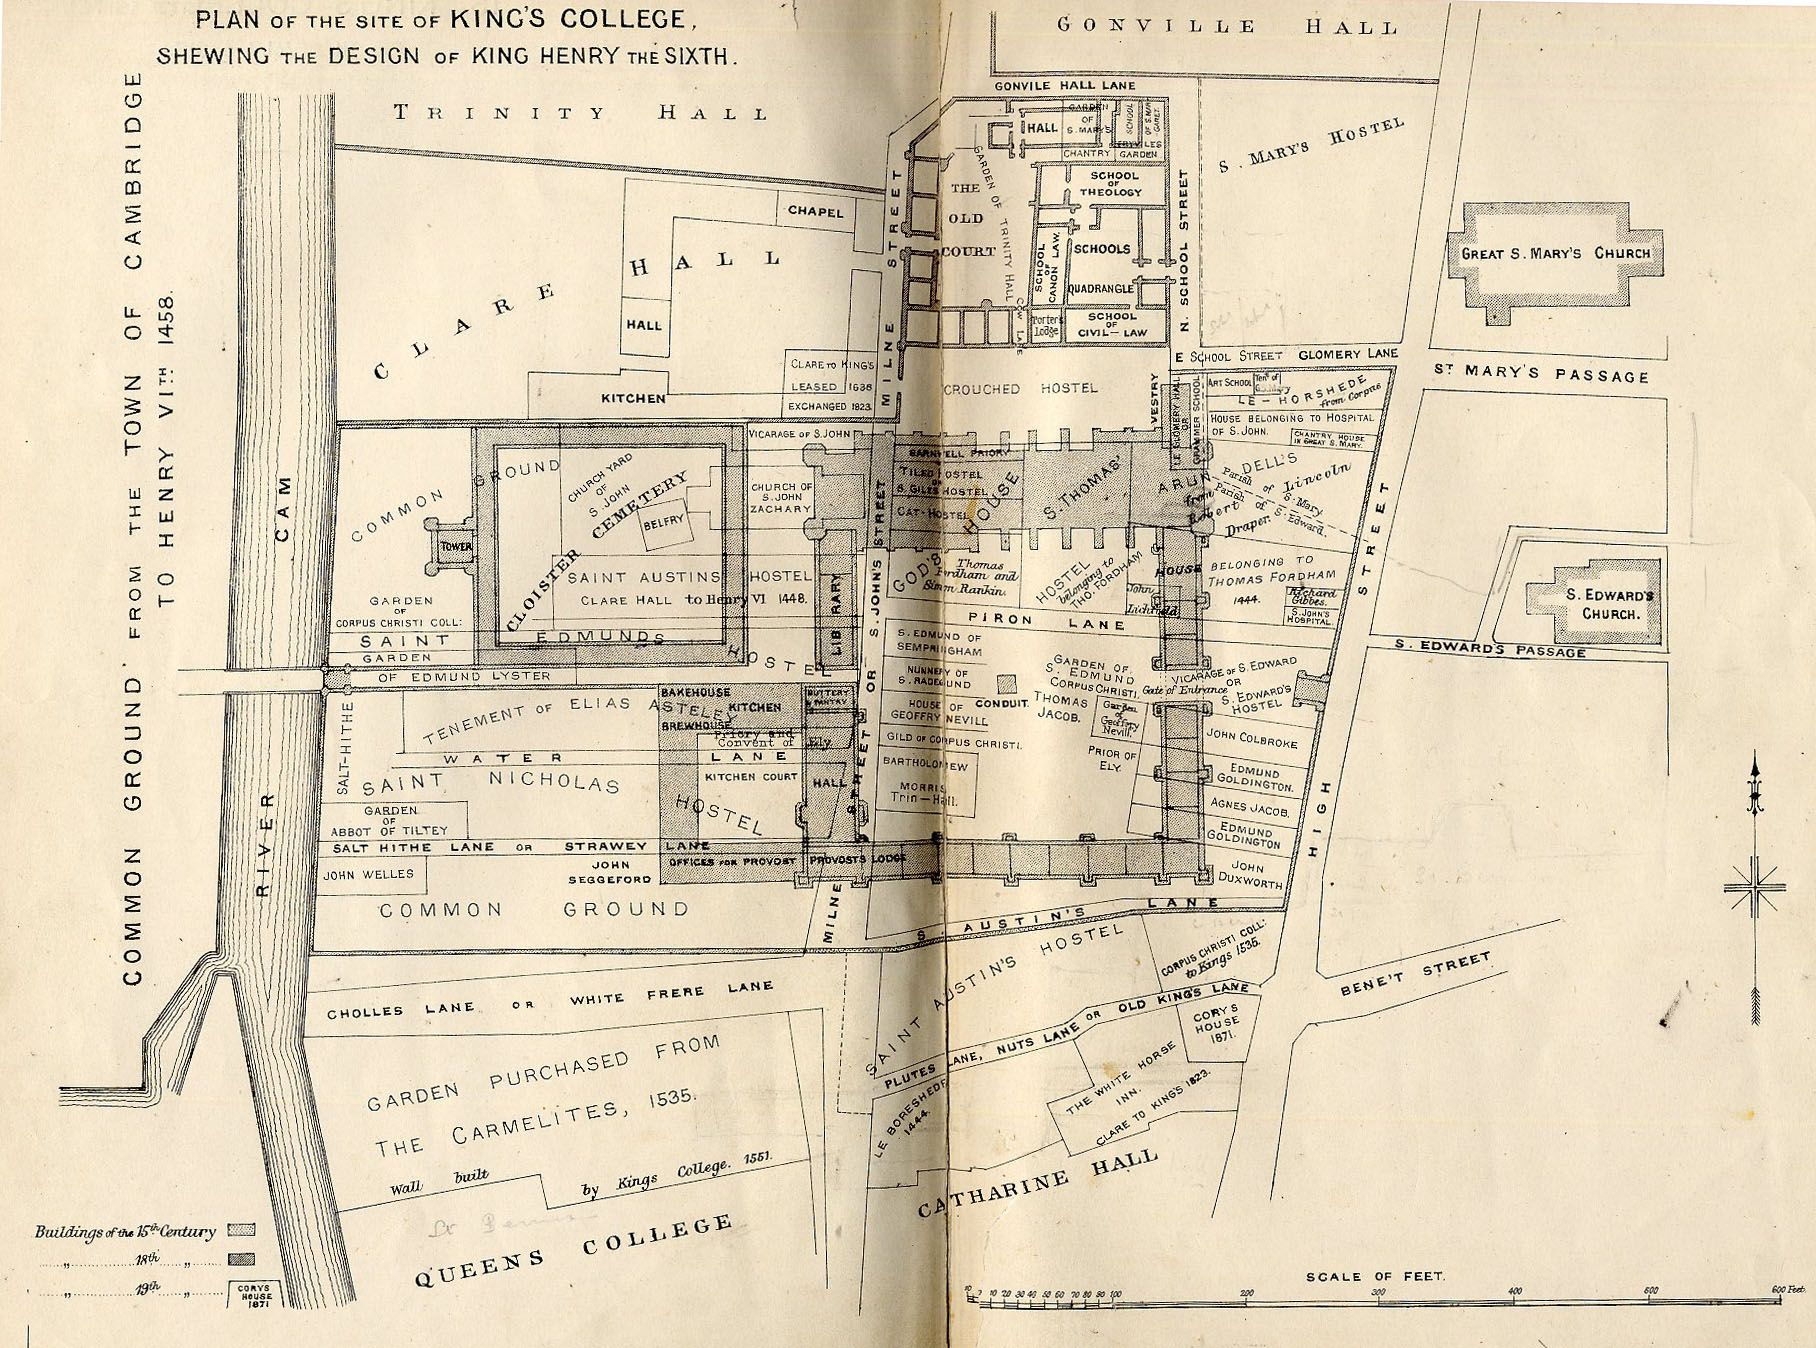 Plan of the site of King's College, showing the design of King Henry VI. [Willis and Clark, figure 3a]